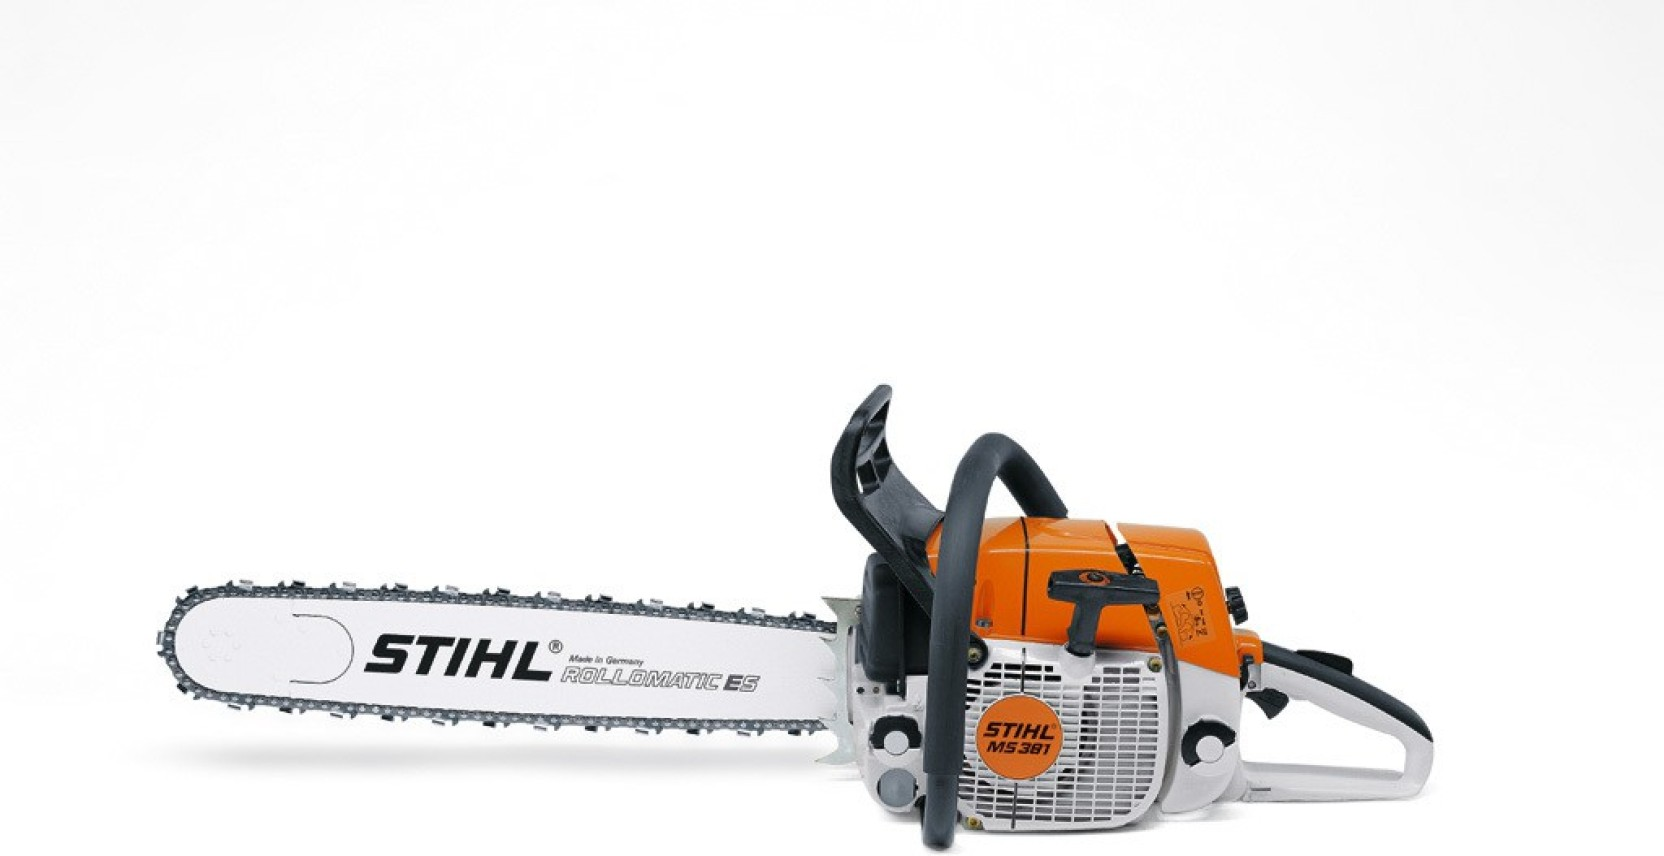 Stihl Ms 381 Fuel Chainsaw Price In India Buy Parts Diagram Oil Pump Free Engine Image For Share